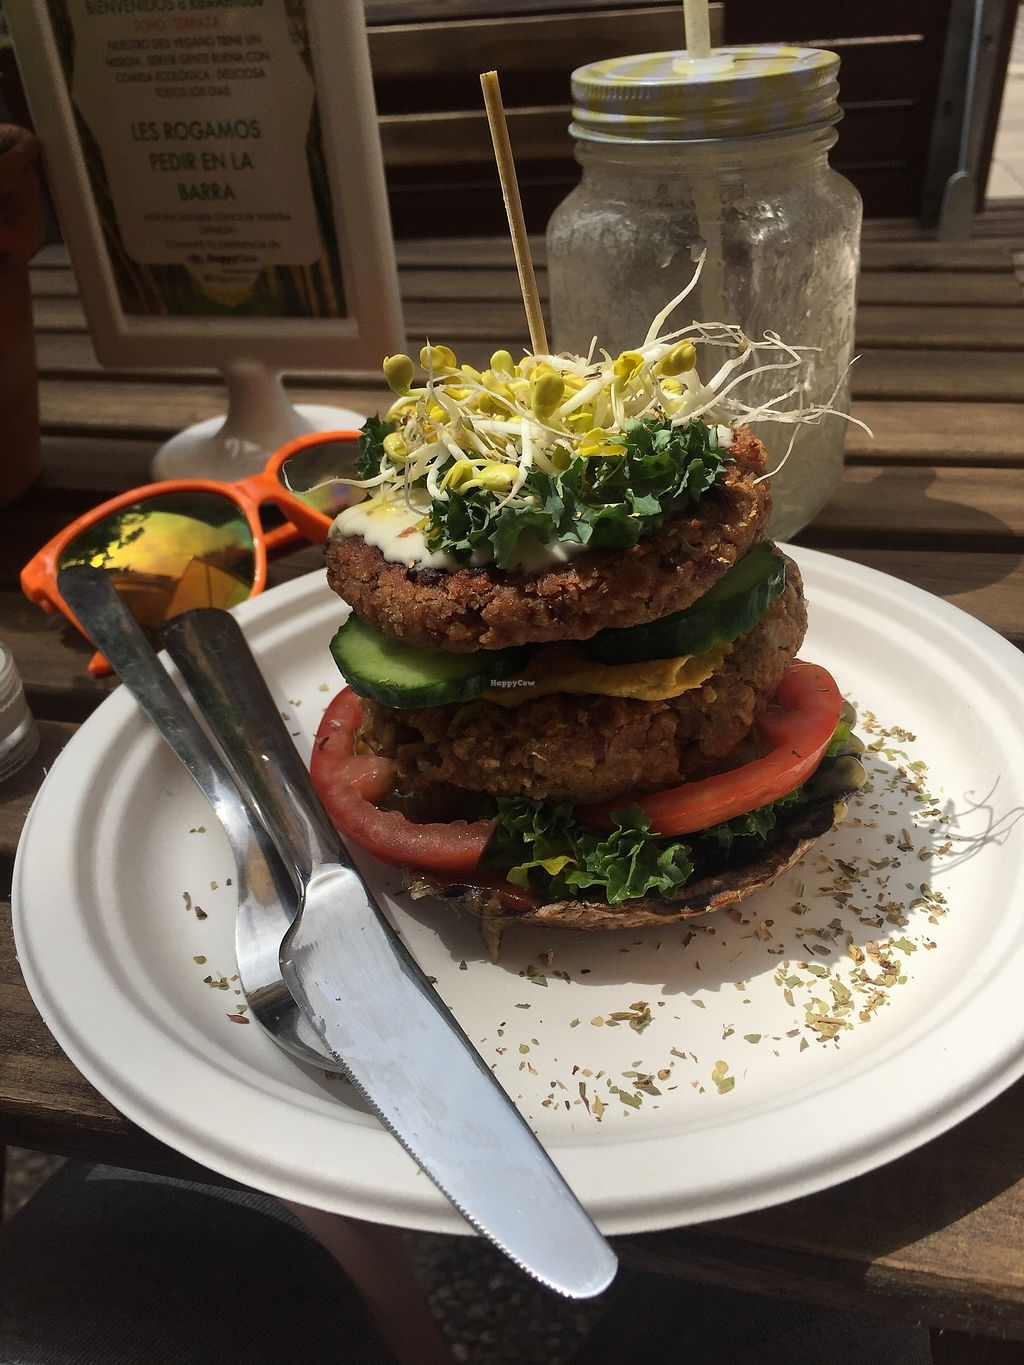 "Photo of RawAttitude  by <a href=""/members/profile/small_trees"">small_trees</a> <br/>Mushroom burger  <br/> July 17, 2017  - <a href='/contact/abuse/image/80893/281340'>Report</a>"